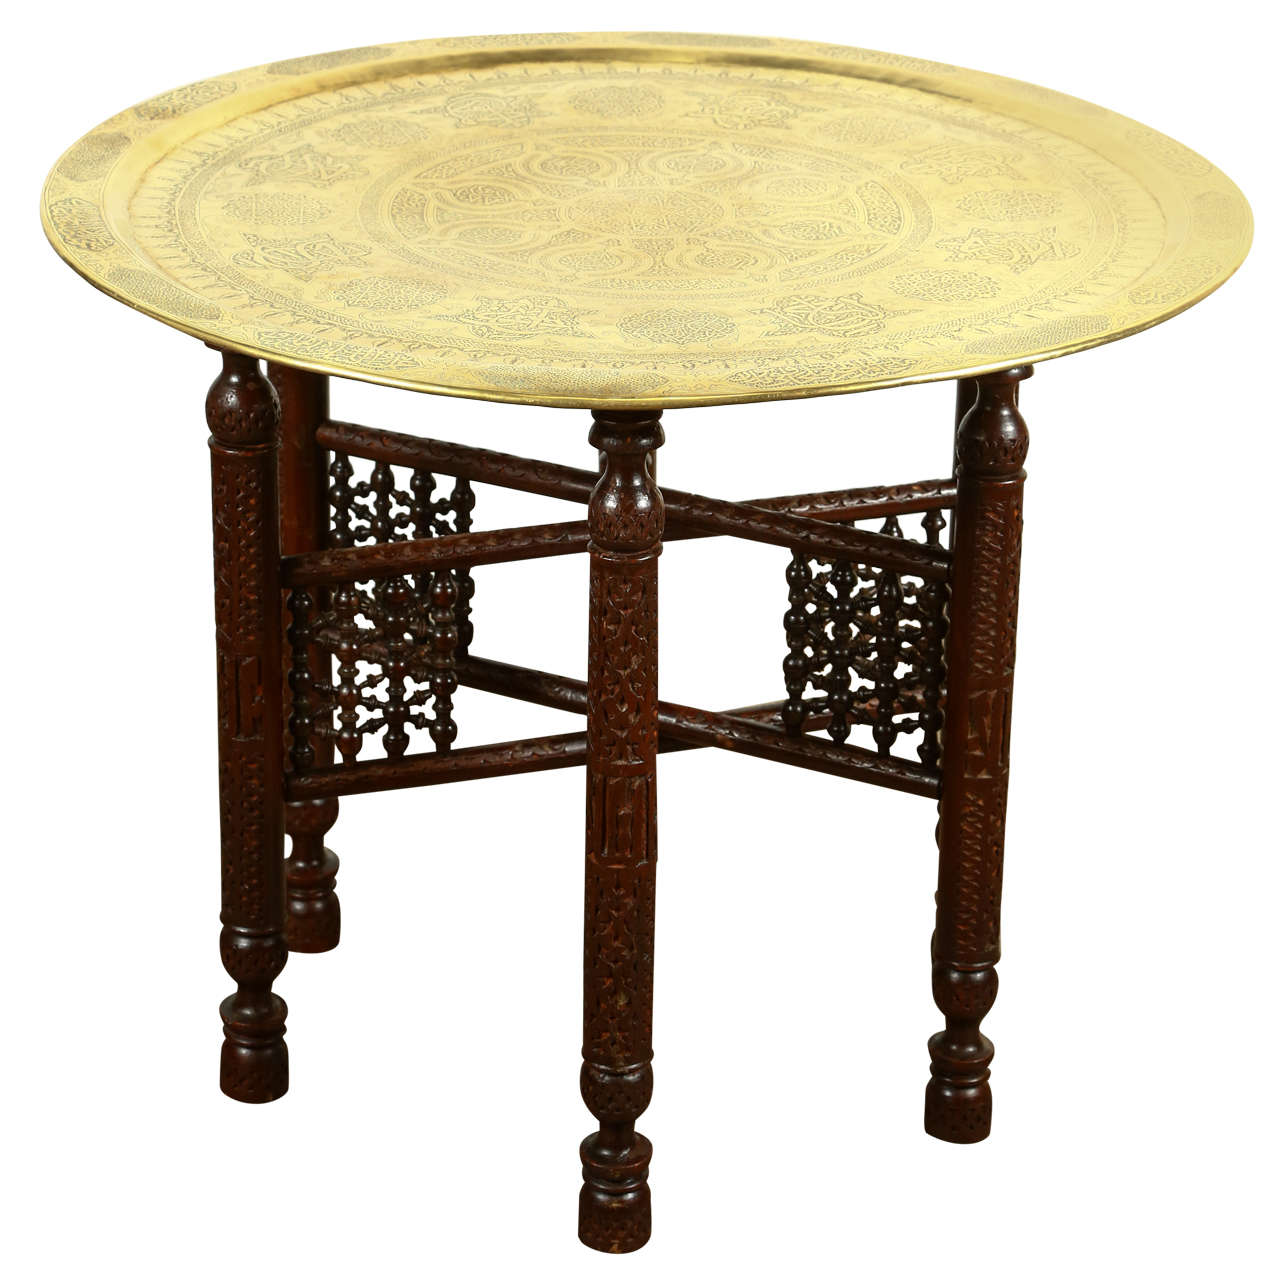 Antique arabic brass tray side table at 1stdibs for Tray side table